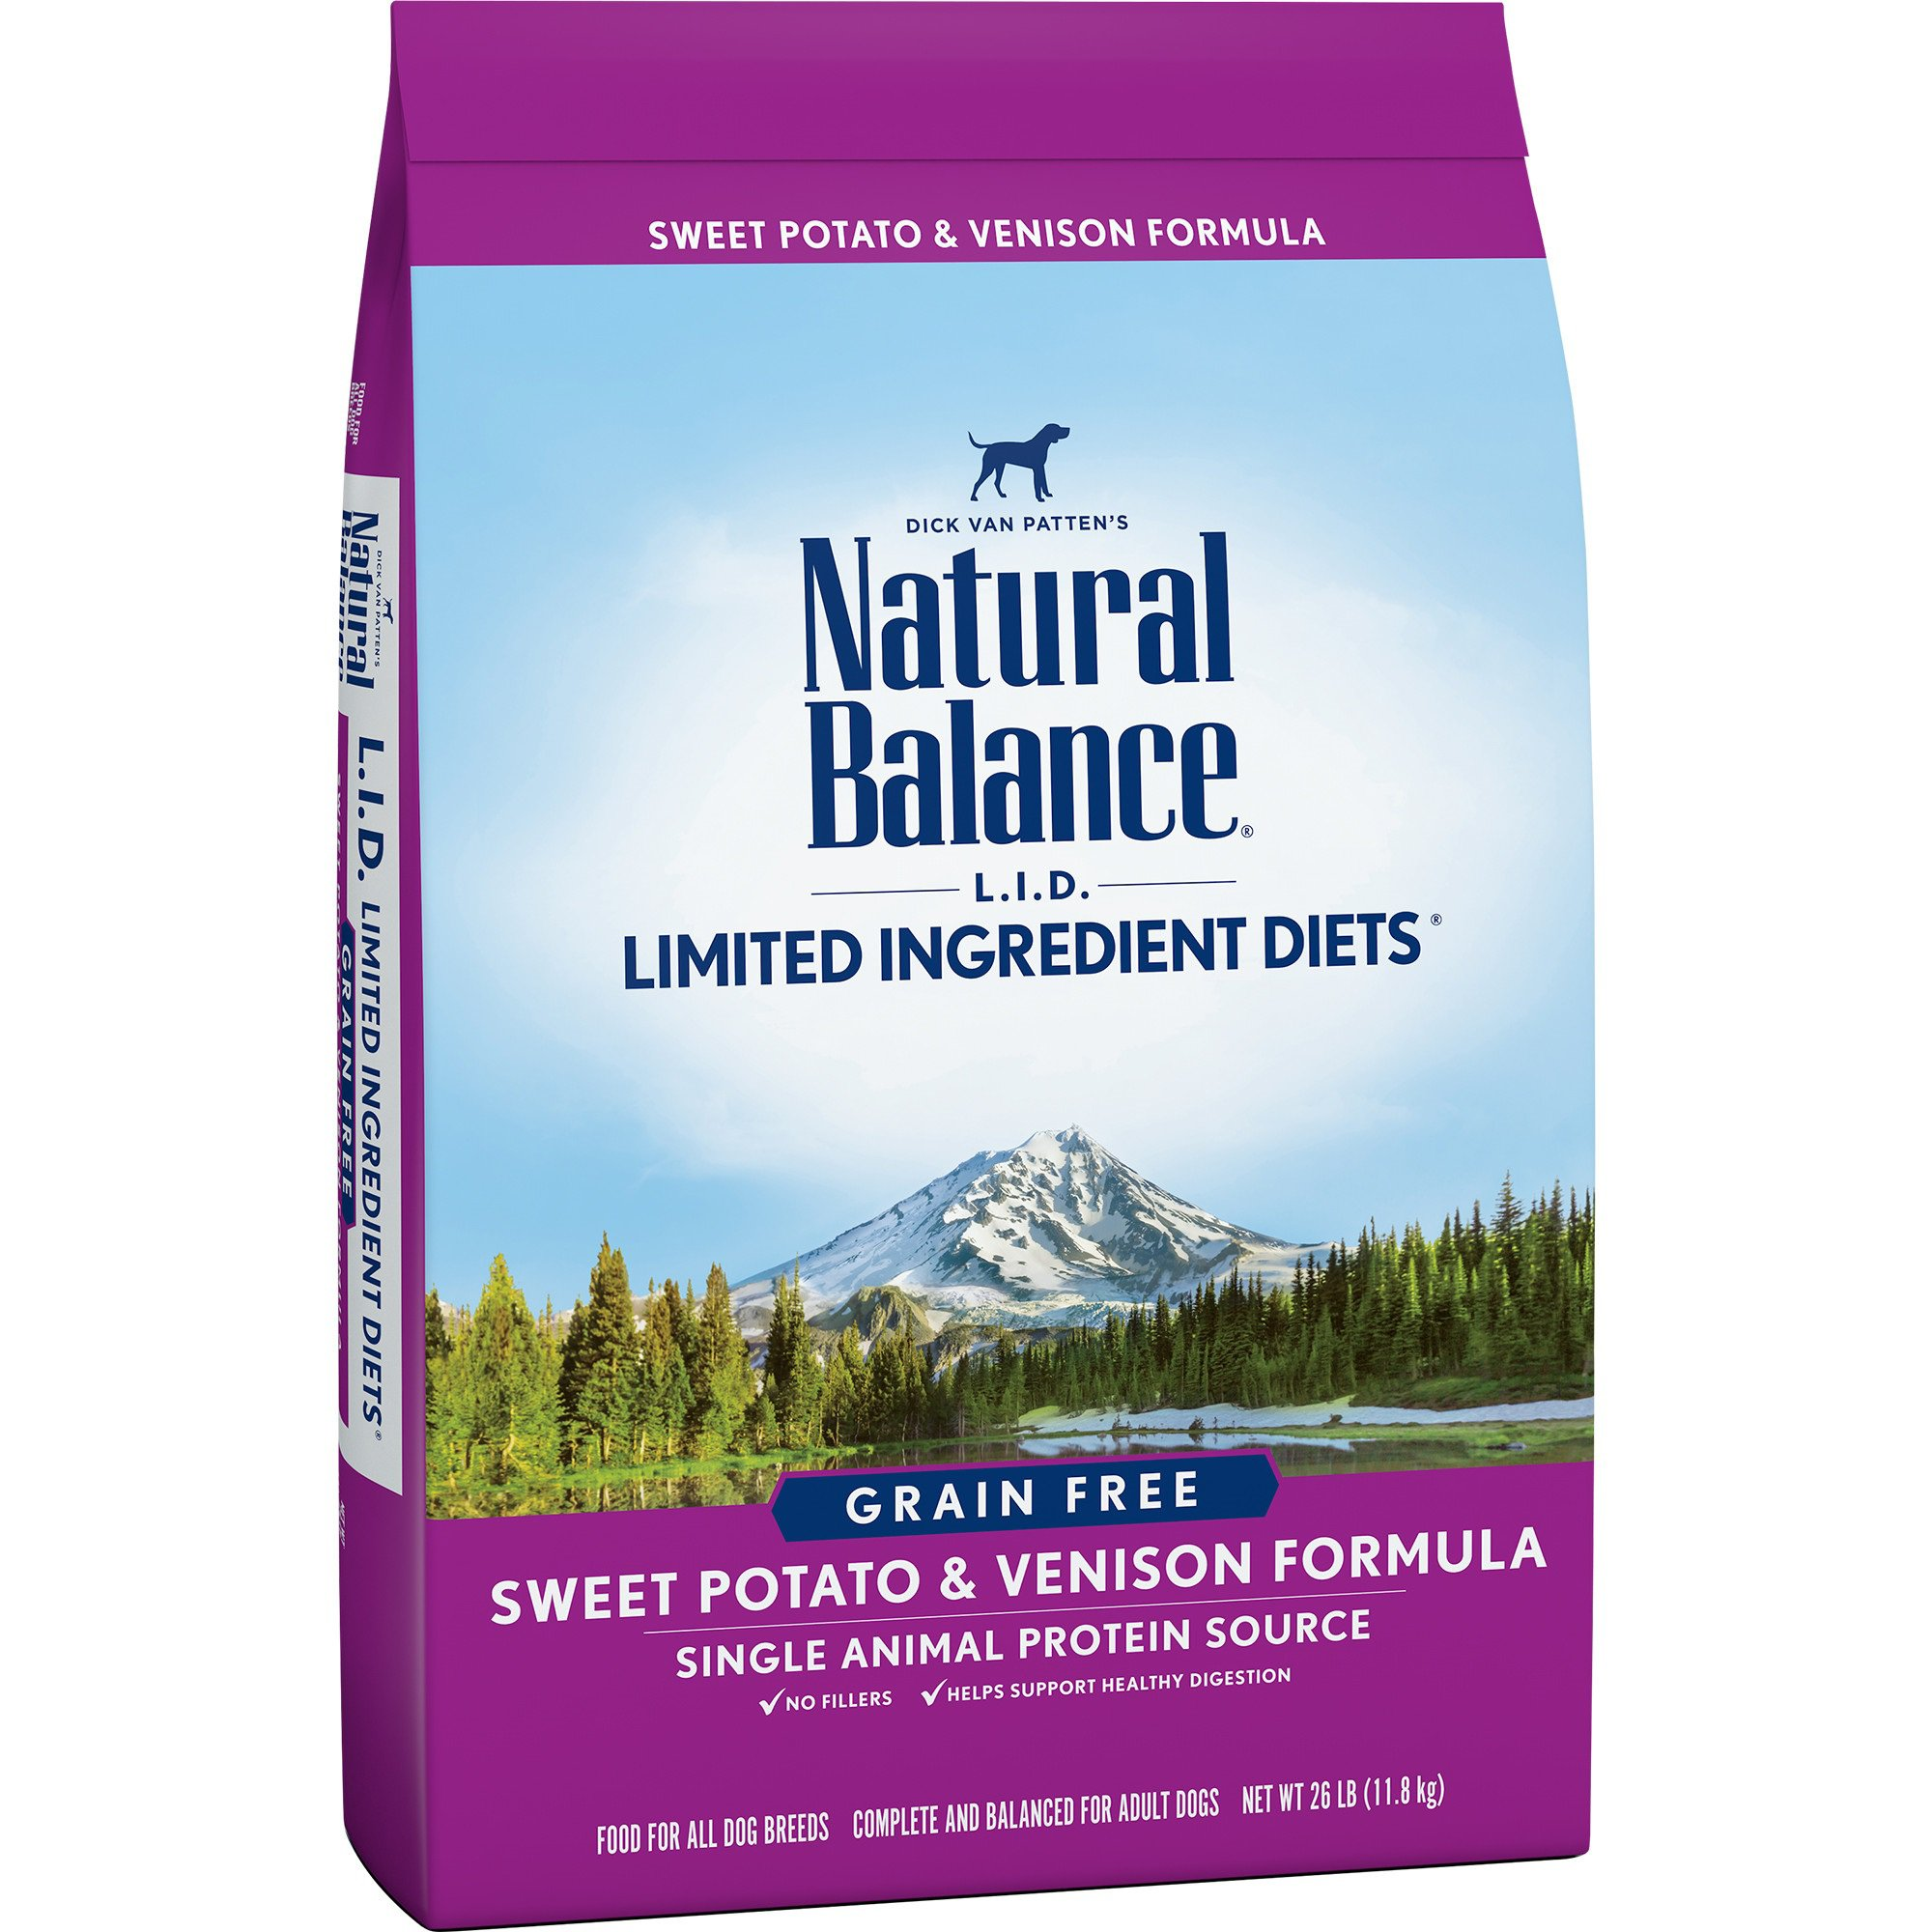 Natural Balance L.I.D. Limited Ingredient Diets Sweet Potato & Venison Grain Free Dog Food, 26 lbs.